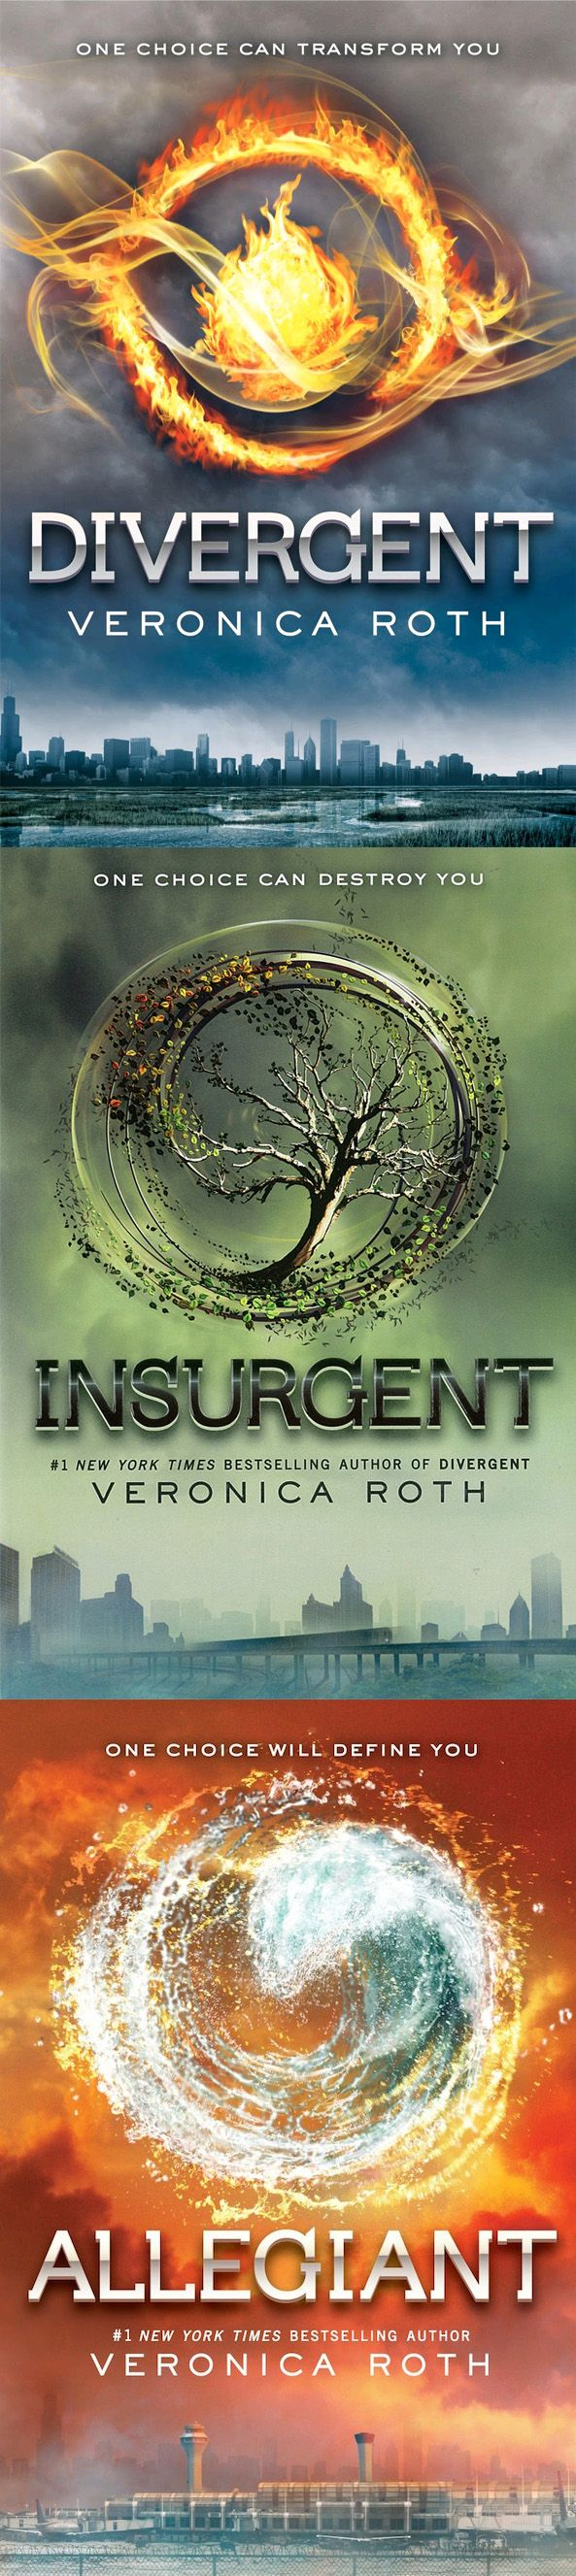 """Divergent"" by Veronica Roth Essay"